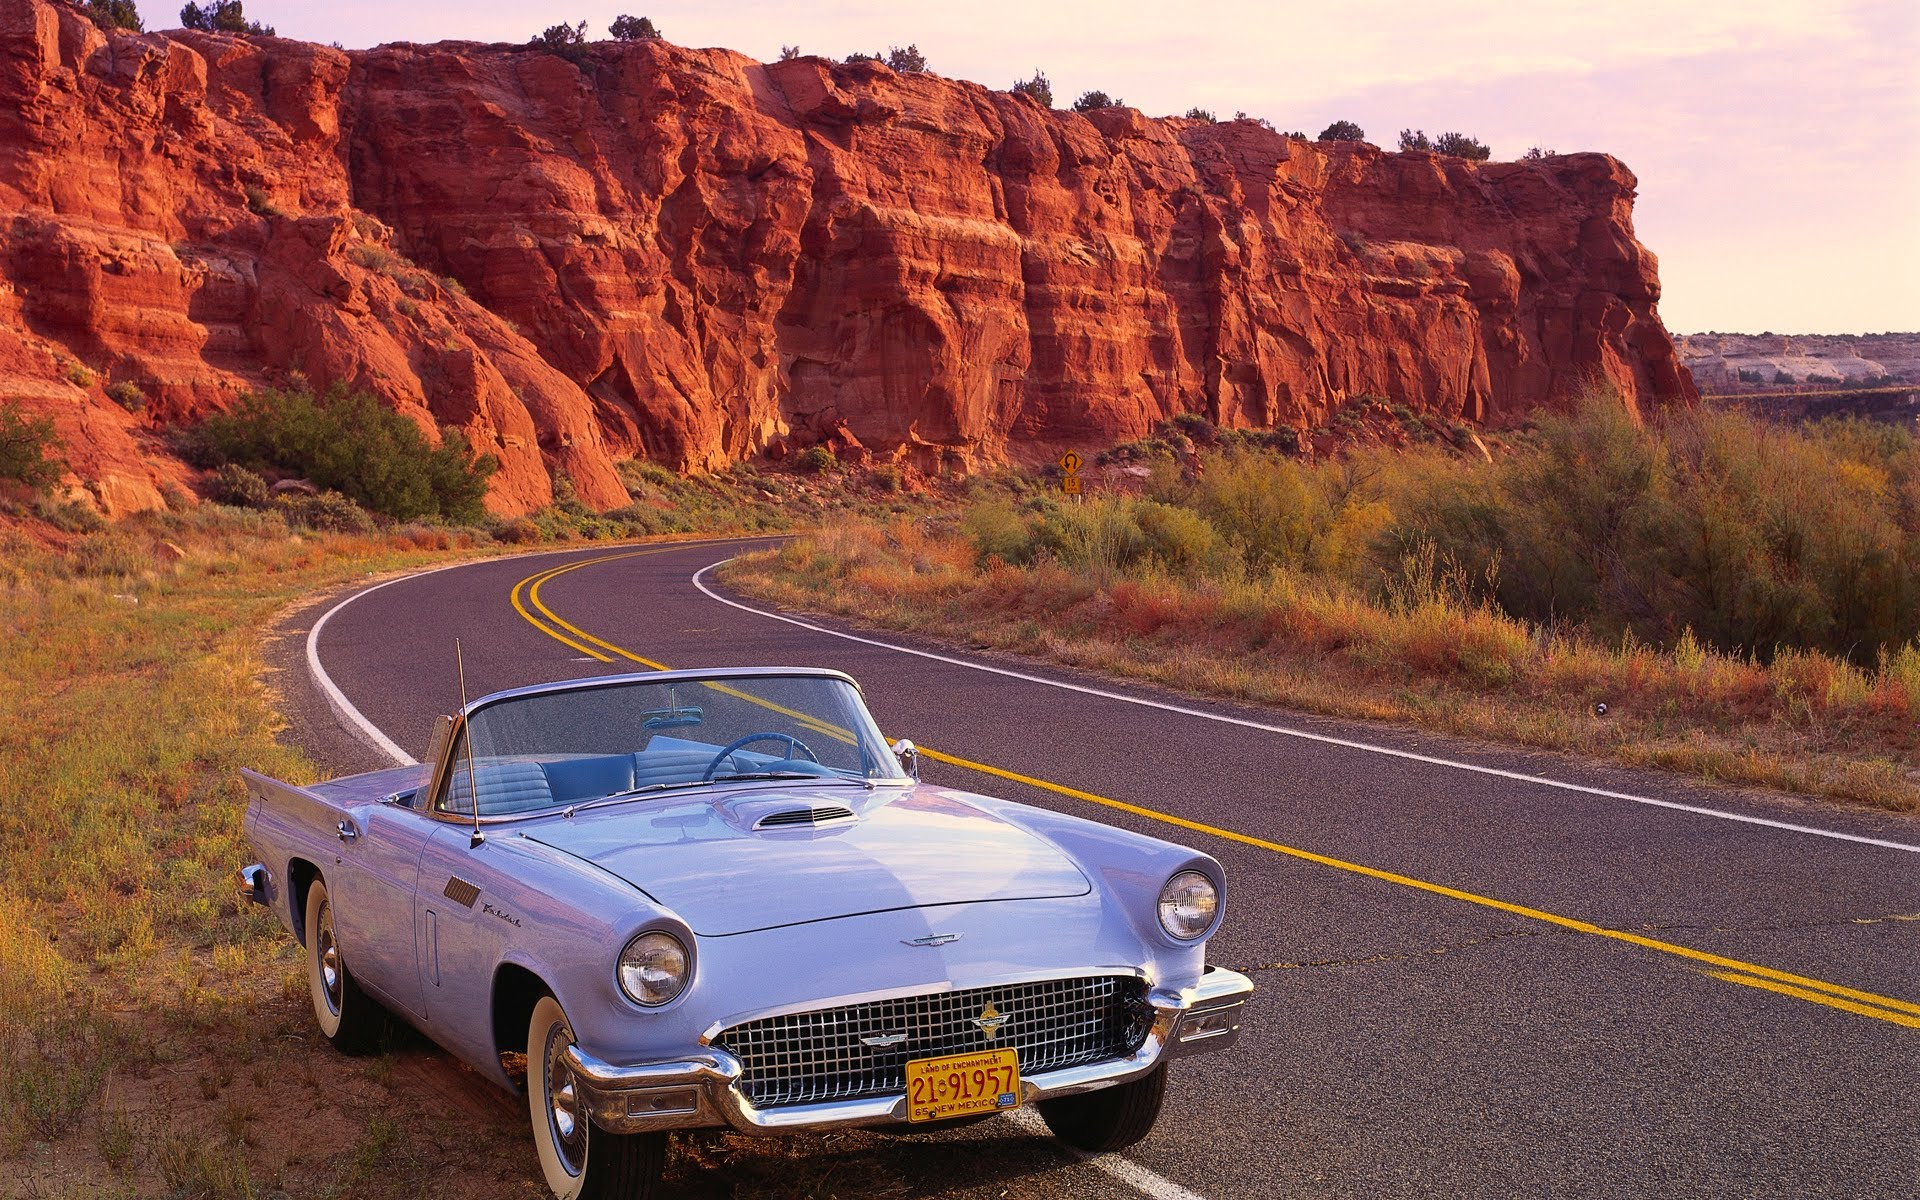 Book your car hire from the UK